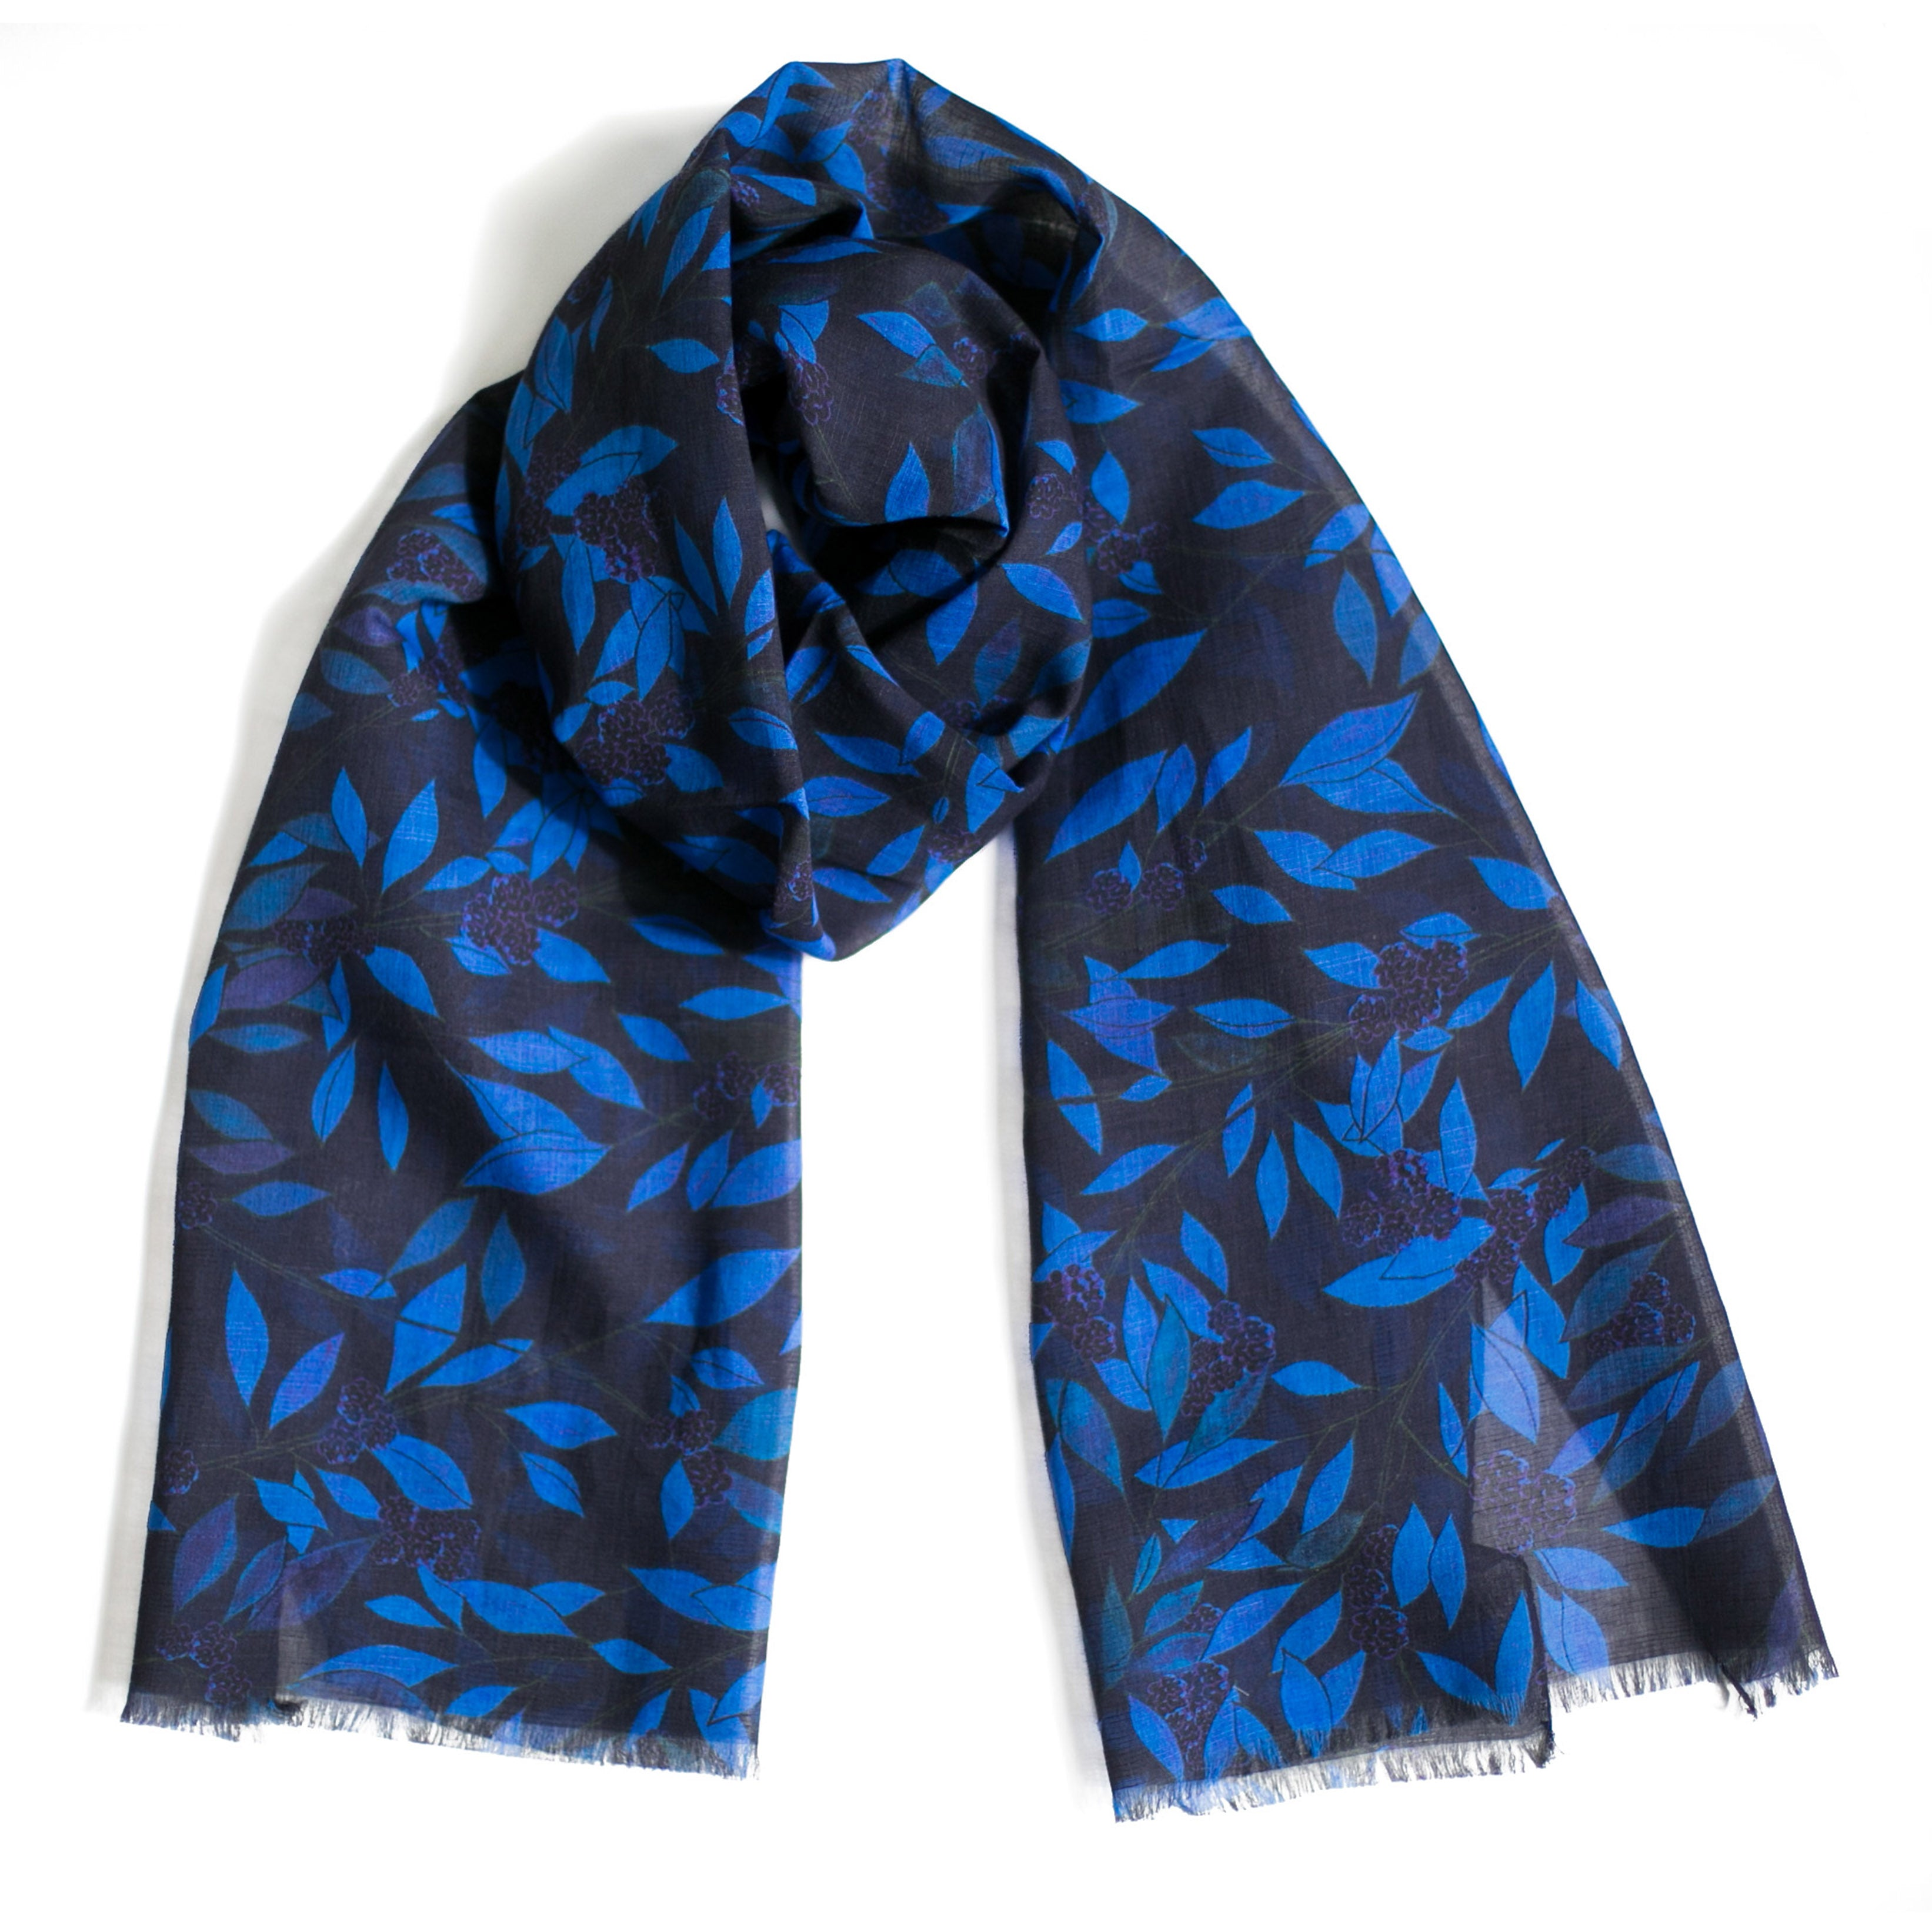 Foulard Forêt - lin coton modal cachemire, made in Italy